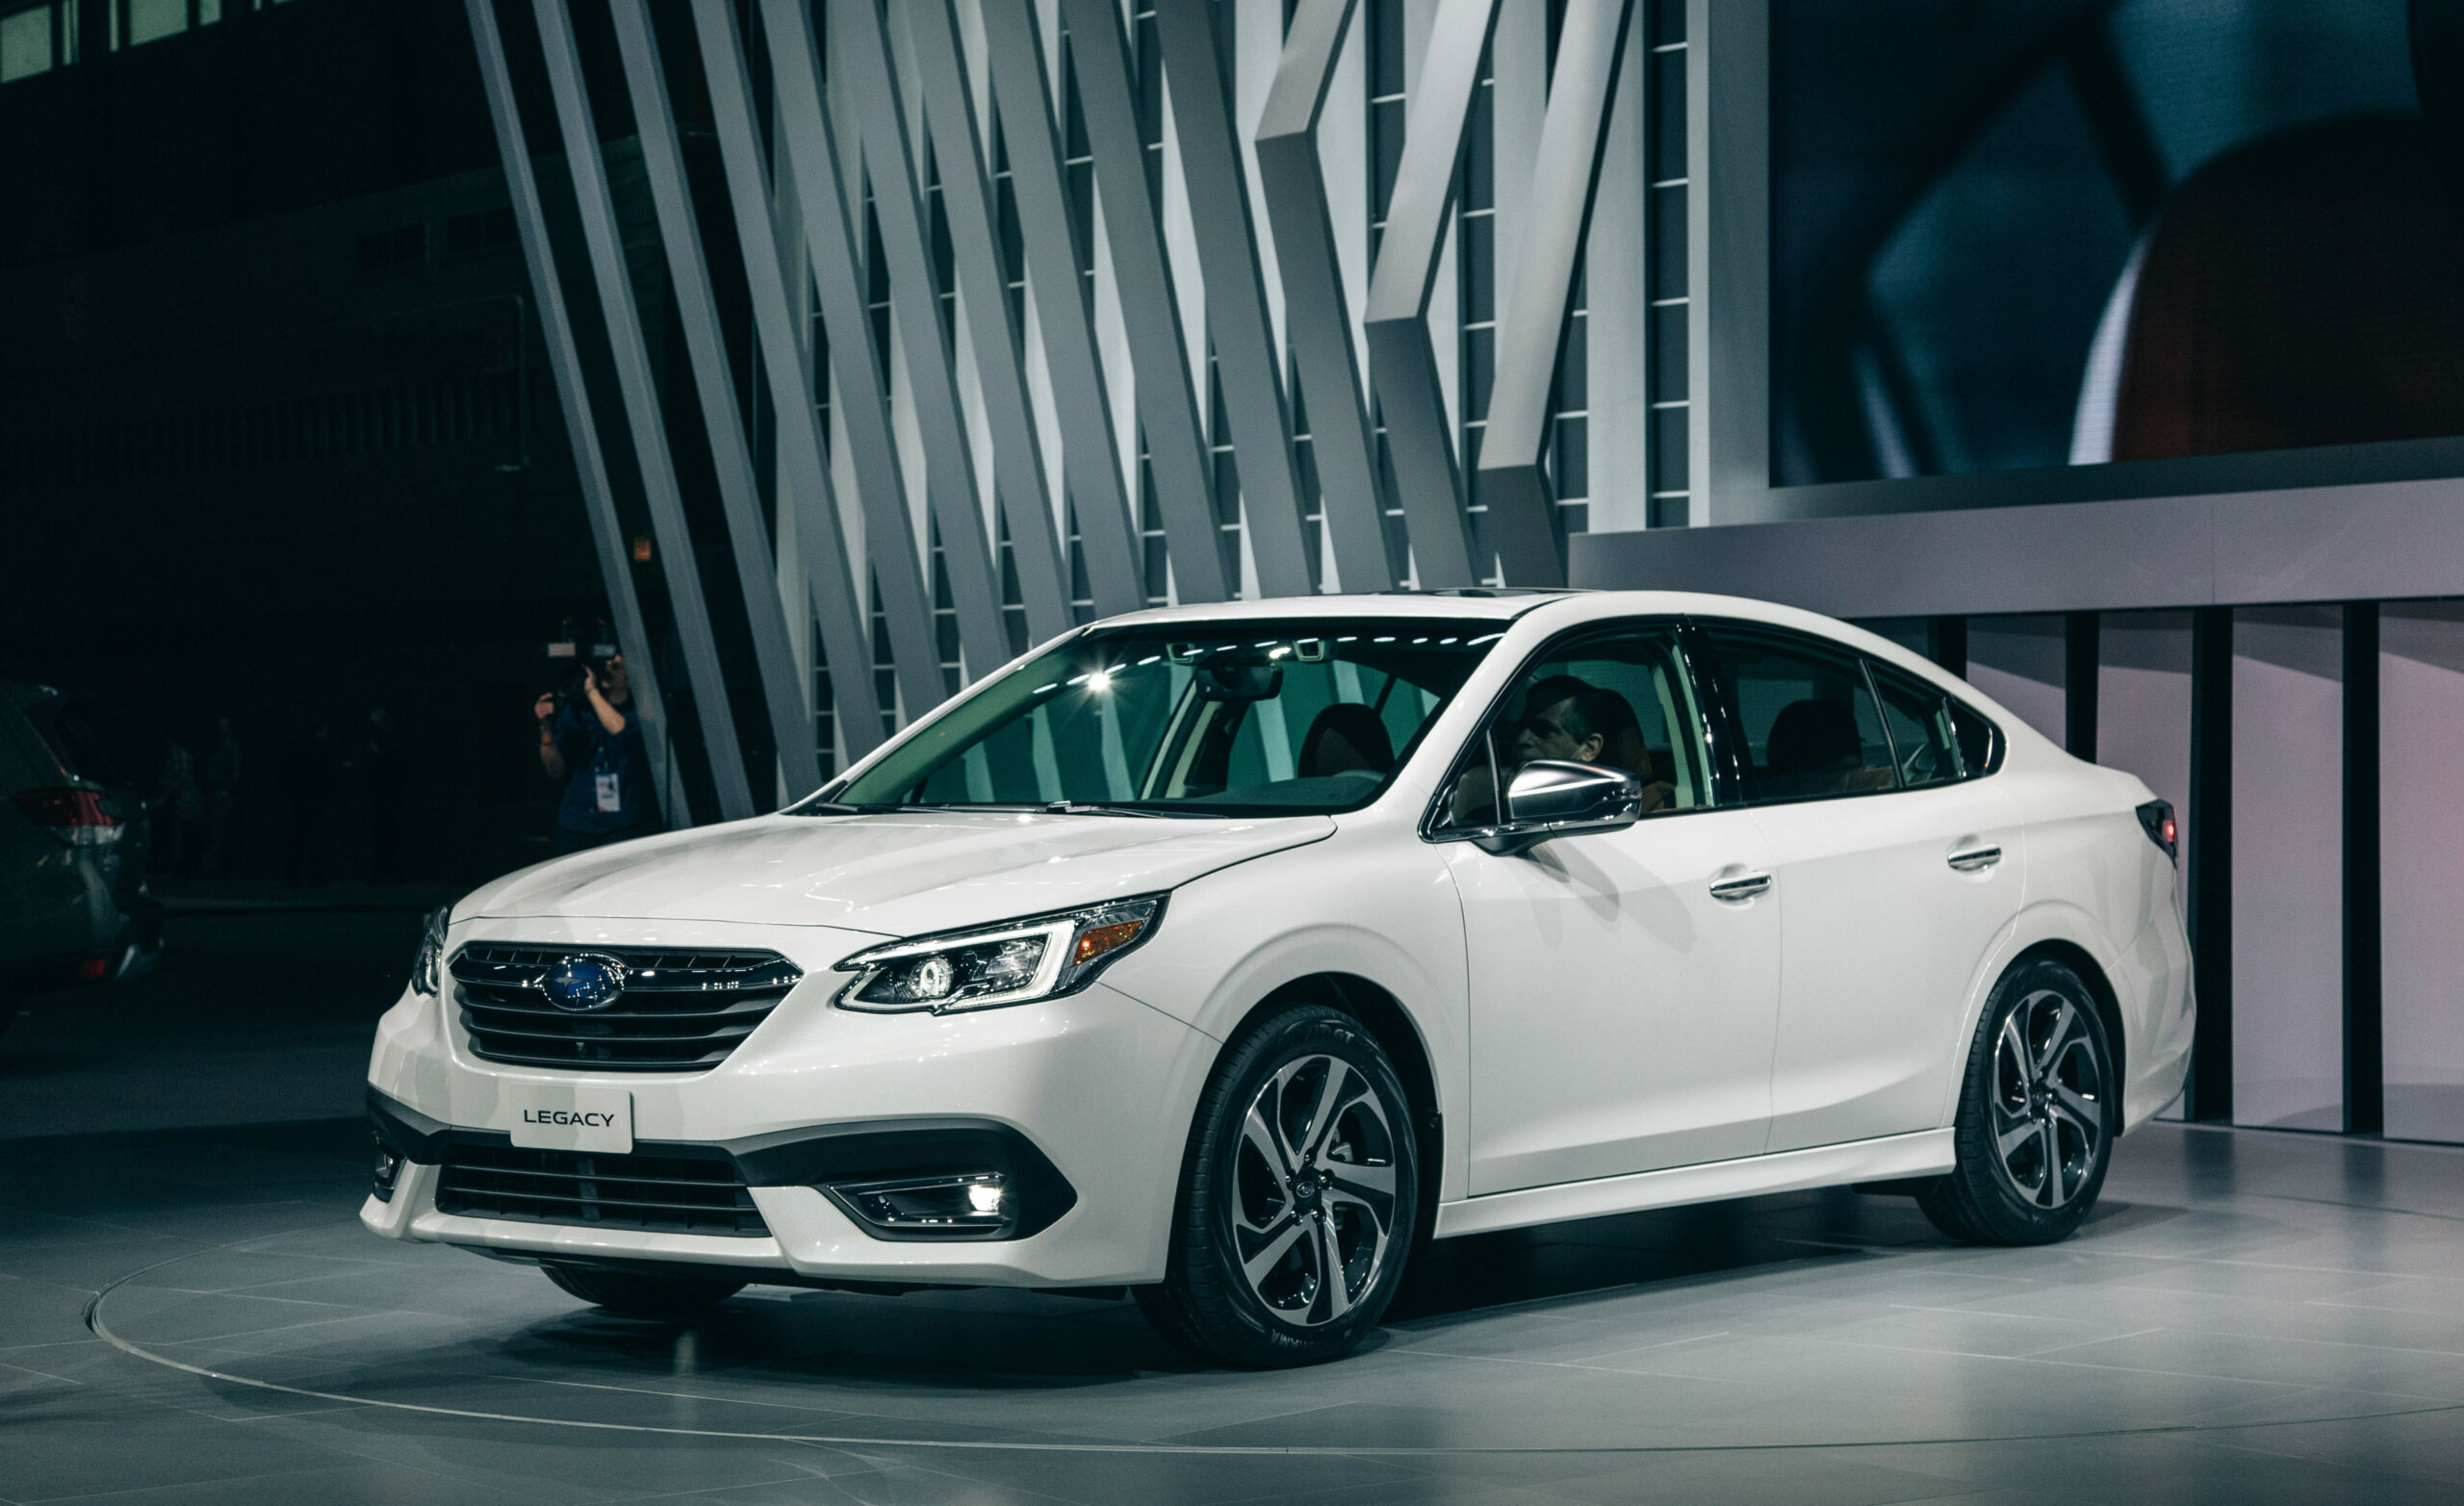 7 Subaru Legacy Sedan – All-Wheel Drive, New Turbo, Large ... - 2020 subaru legacy 2